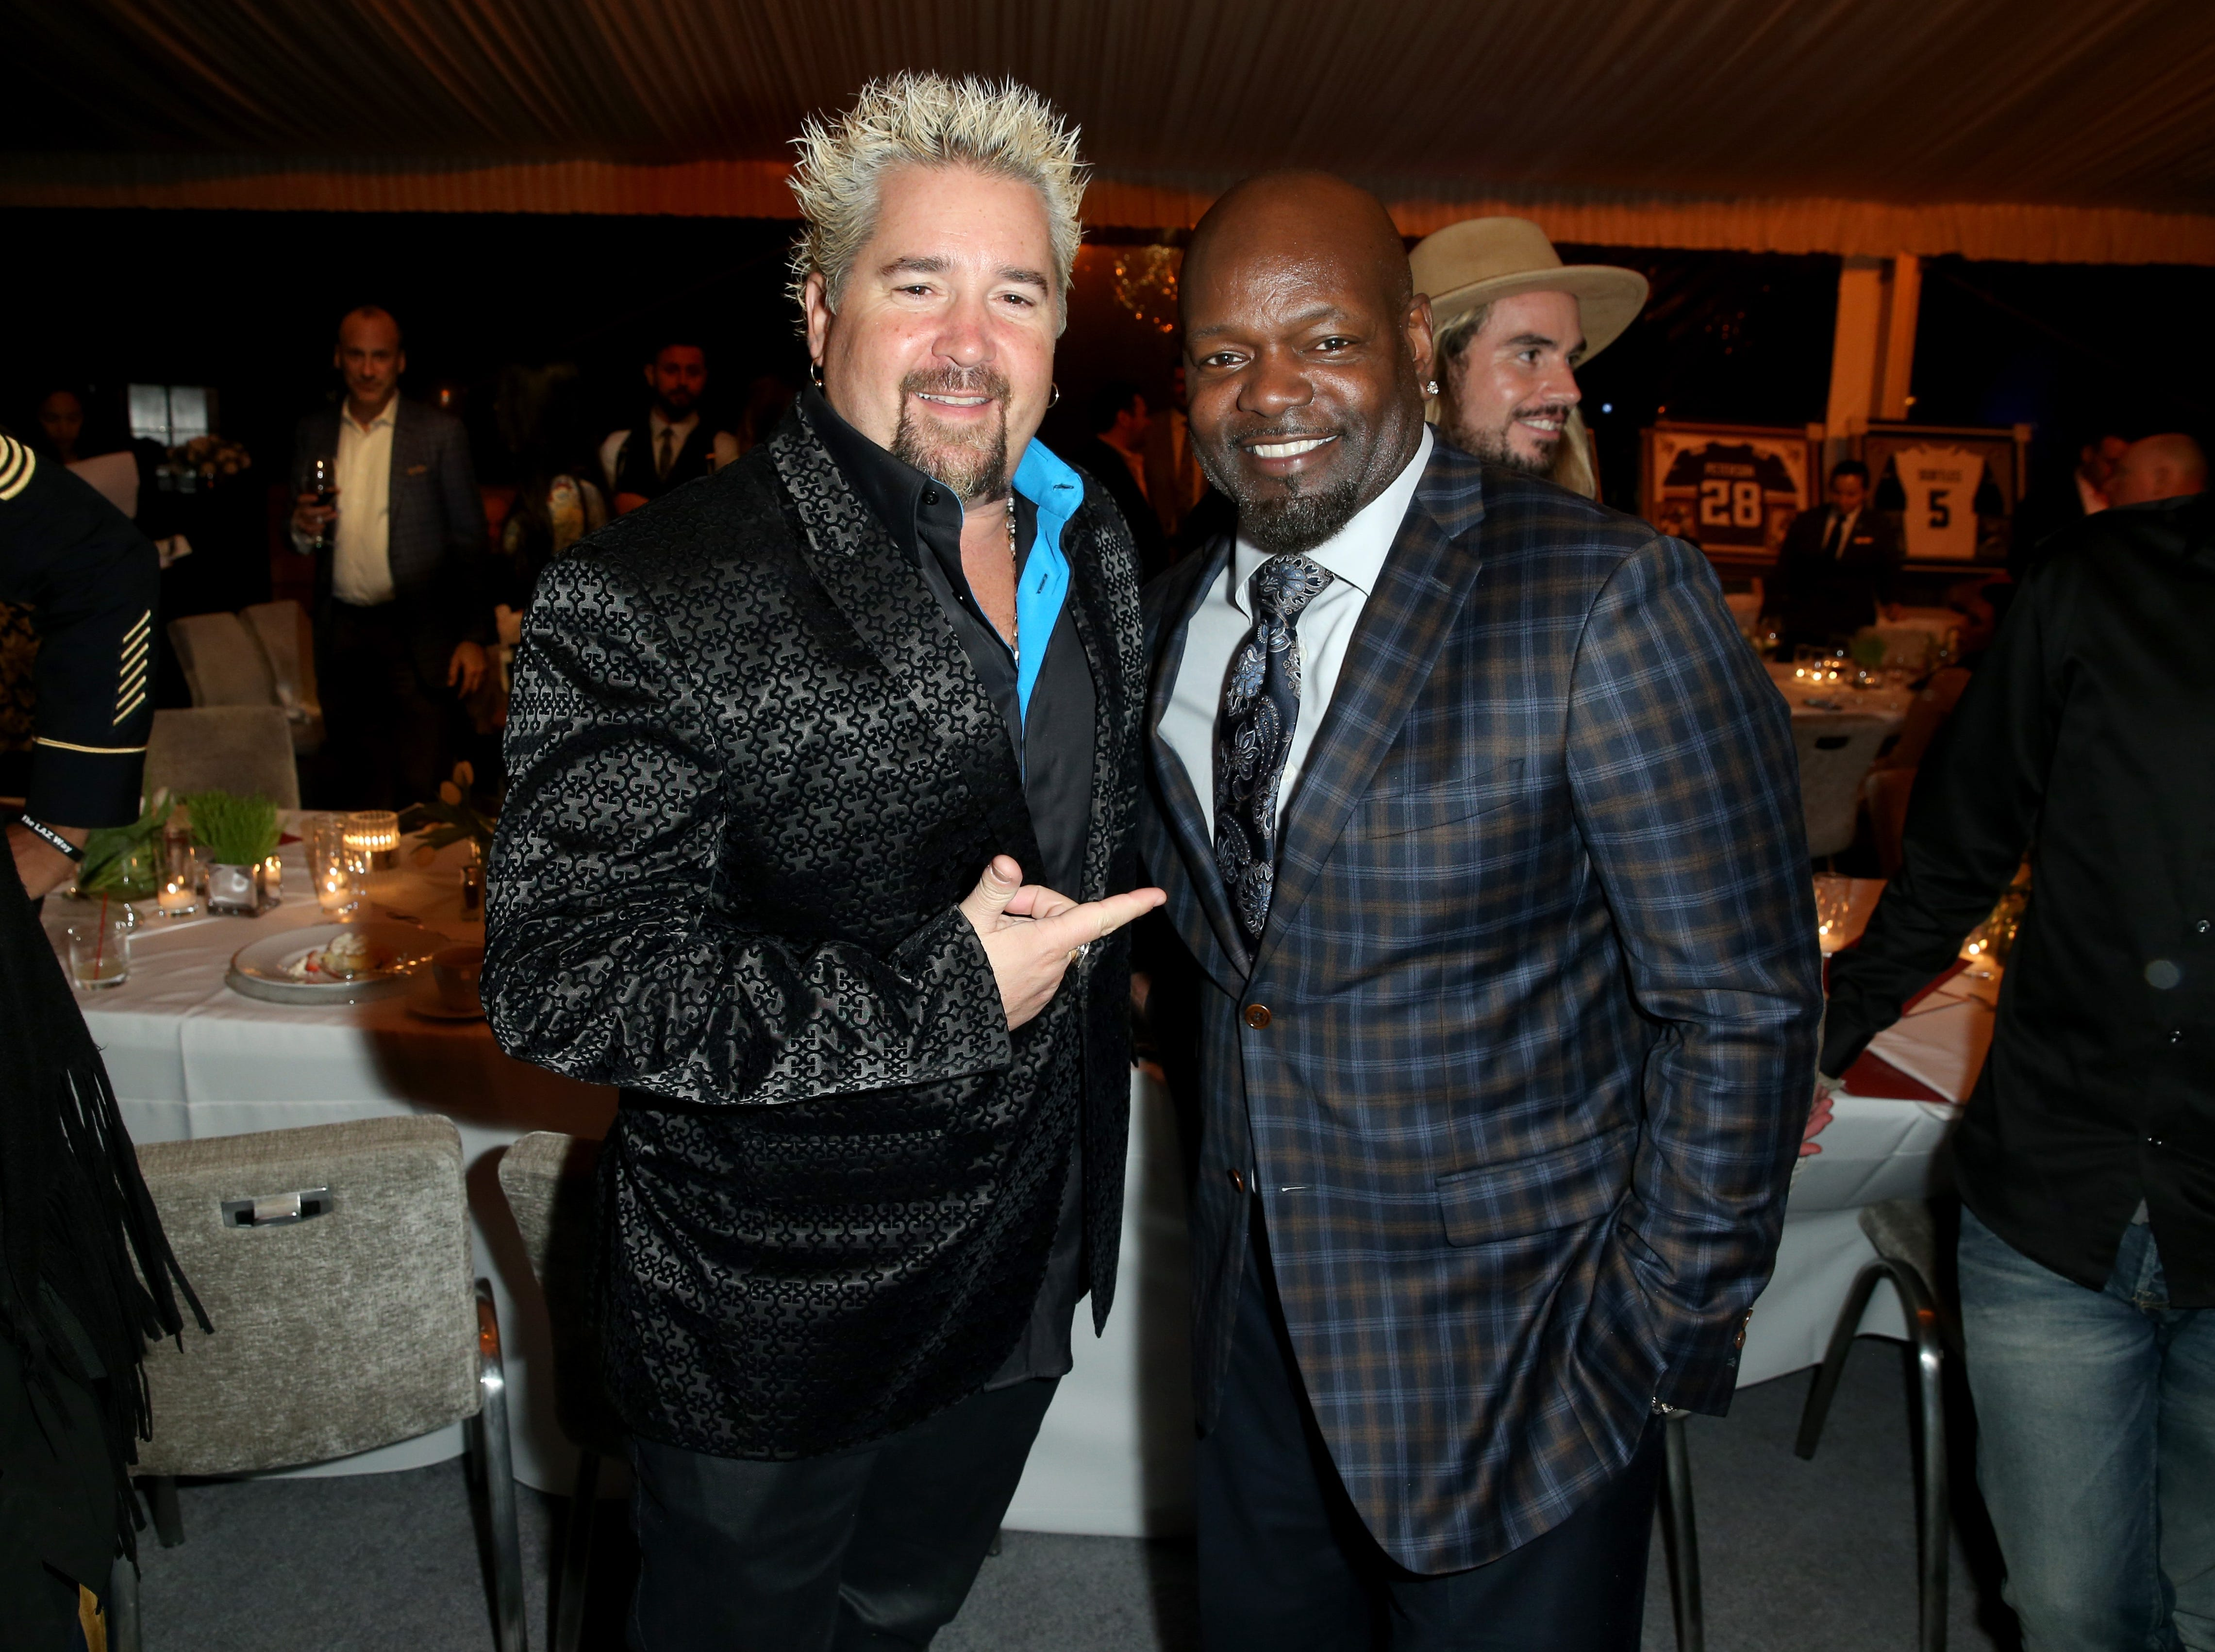 SAN FRANCISCO, CA - FEBRUARY 04:  Chef Guy Fieri (L) and former NFL player Emmitt Smith attend Haute Living And Louis XIII Celebrate Jim Brown's 80th Birthday on February 4, 2016 in San Francisco, California.  (Photo by Joe Scarnici/Getty Images for Haute Living)